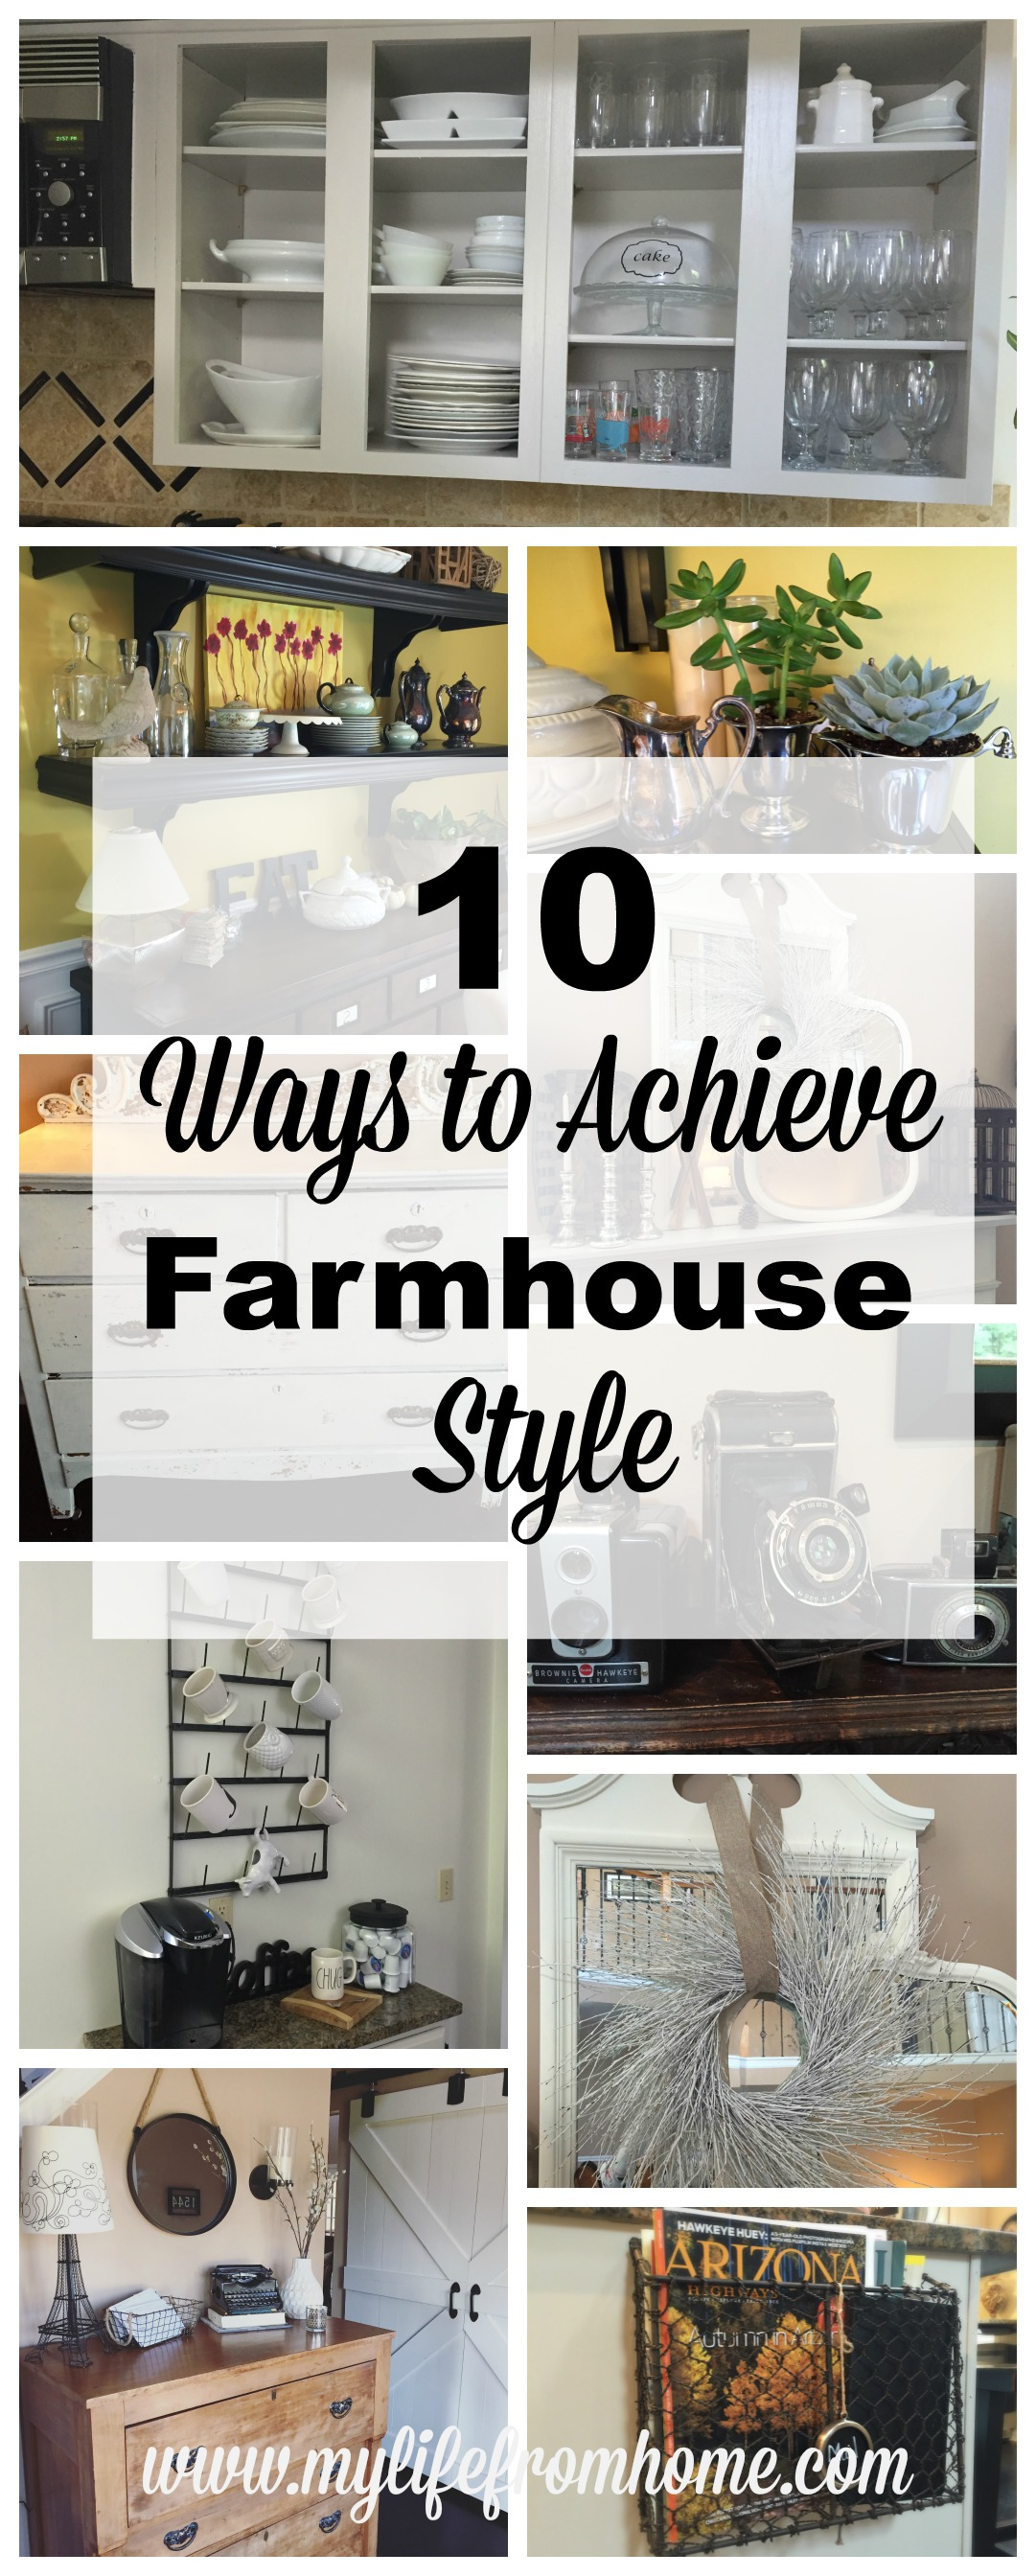 10 Ways to Achieve Farmhouse Style by www.mylifefromhome.com